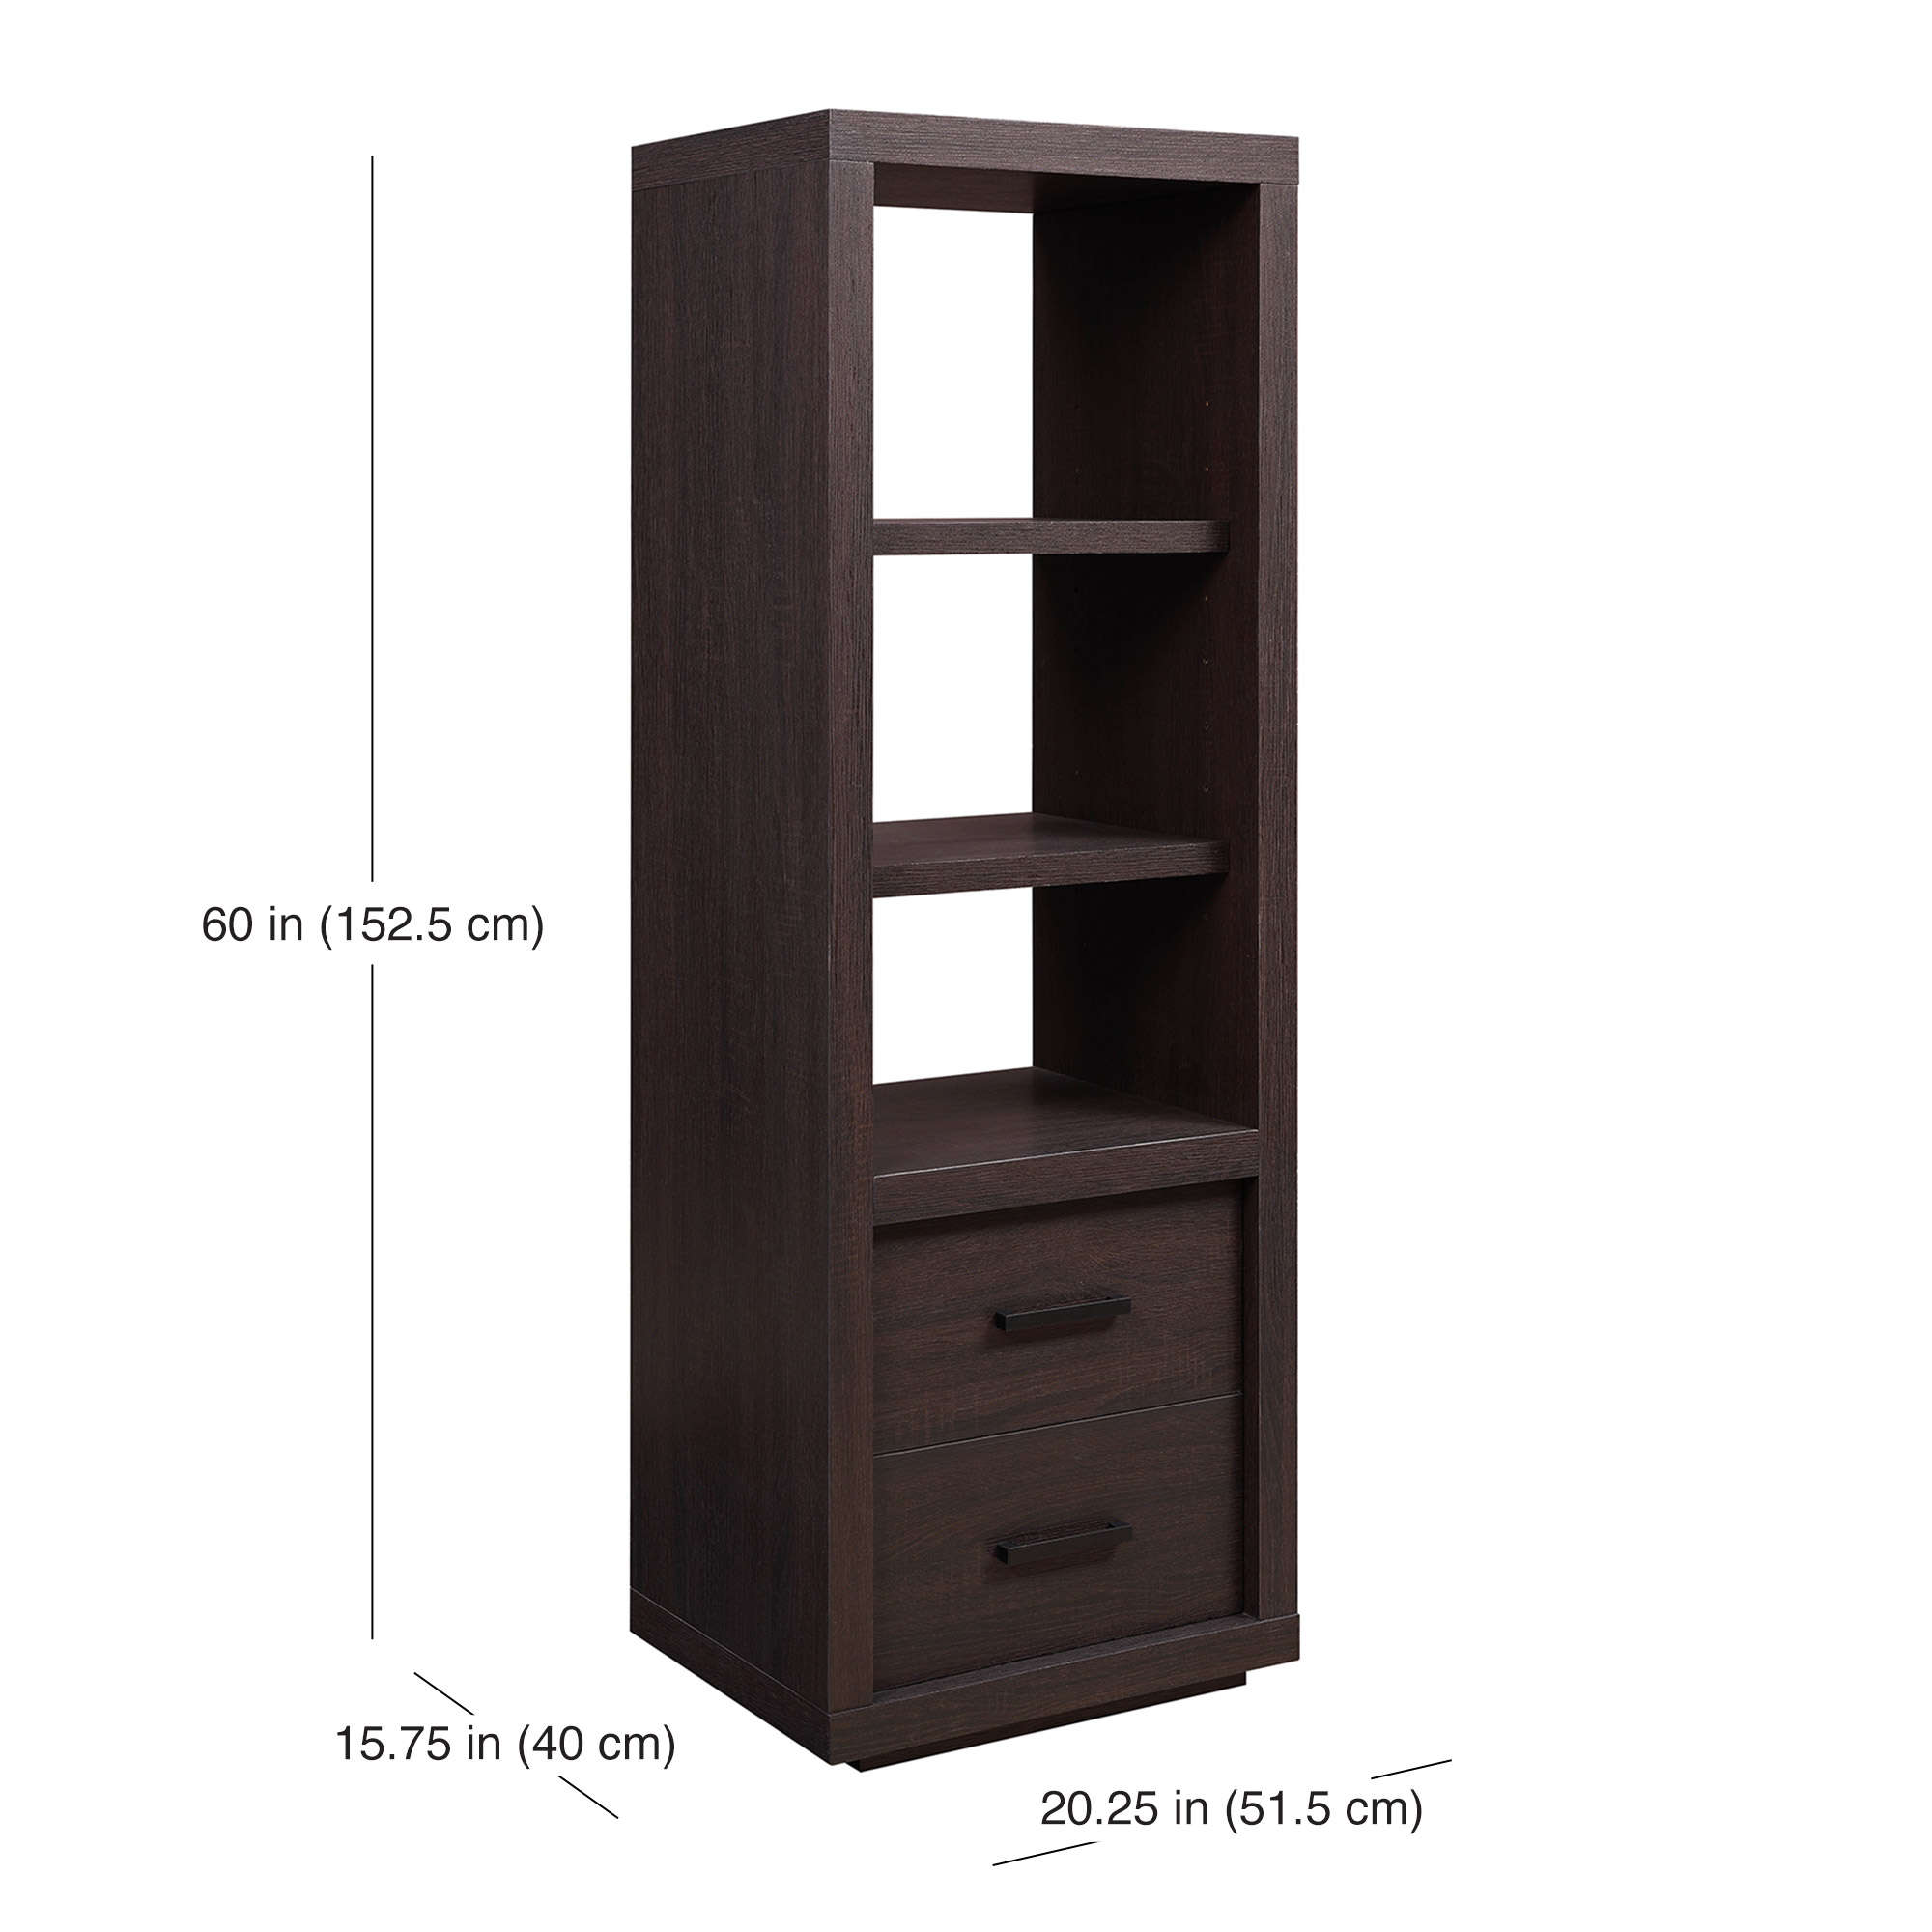 Better Homes Garden Steele Audio Tower Wood Shelves Storage Living Room